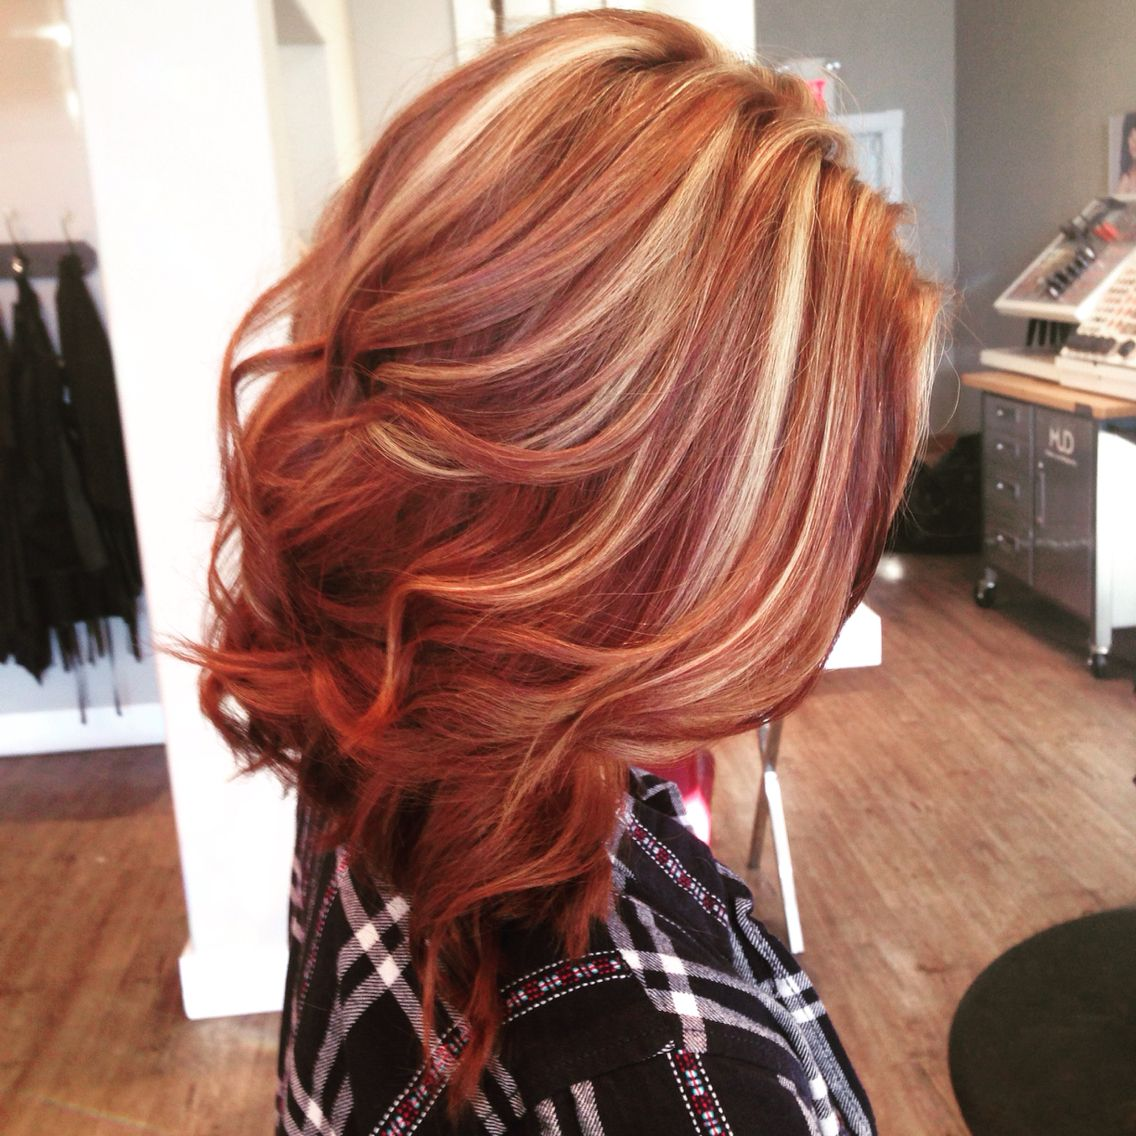 Pin by samantha tobey on my style pinterest highlighted hair